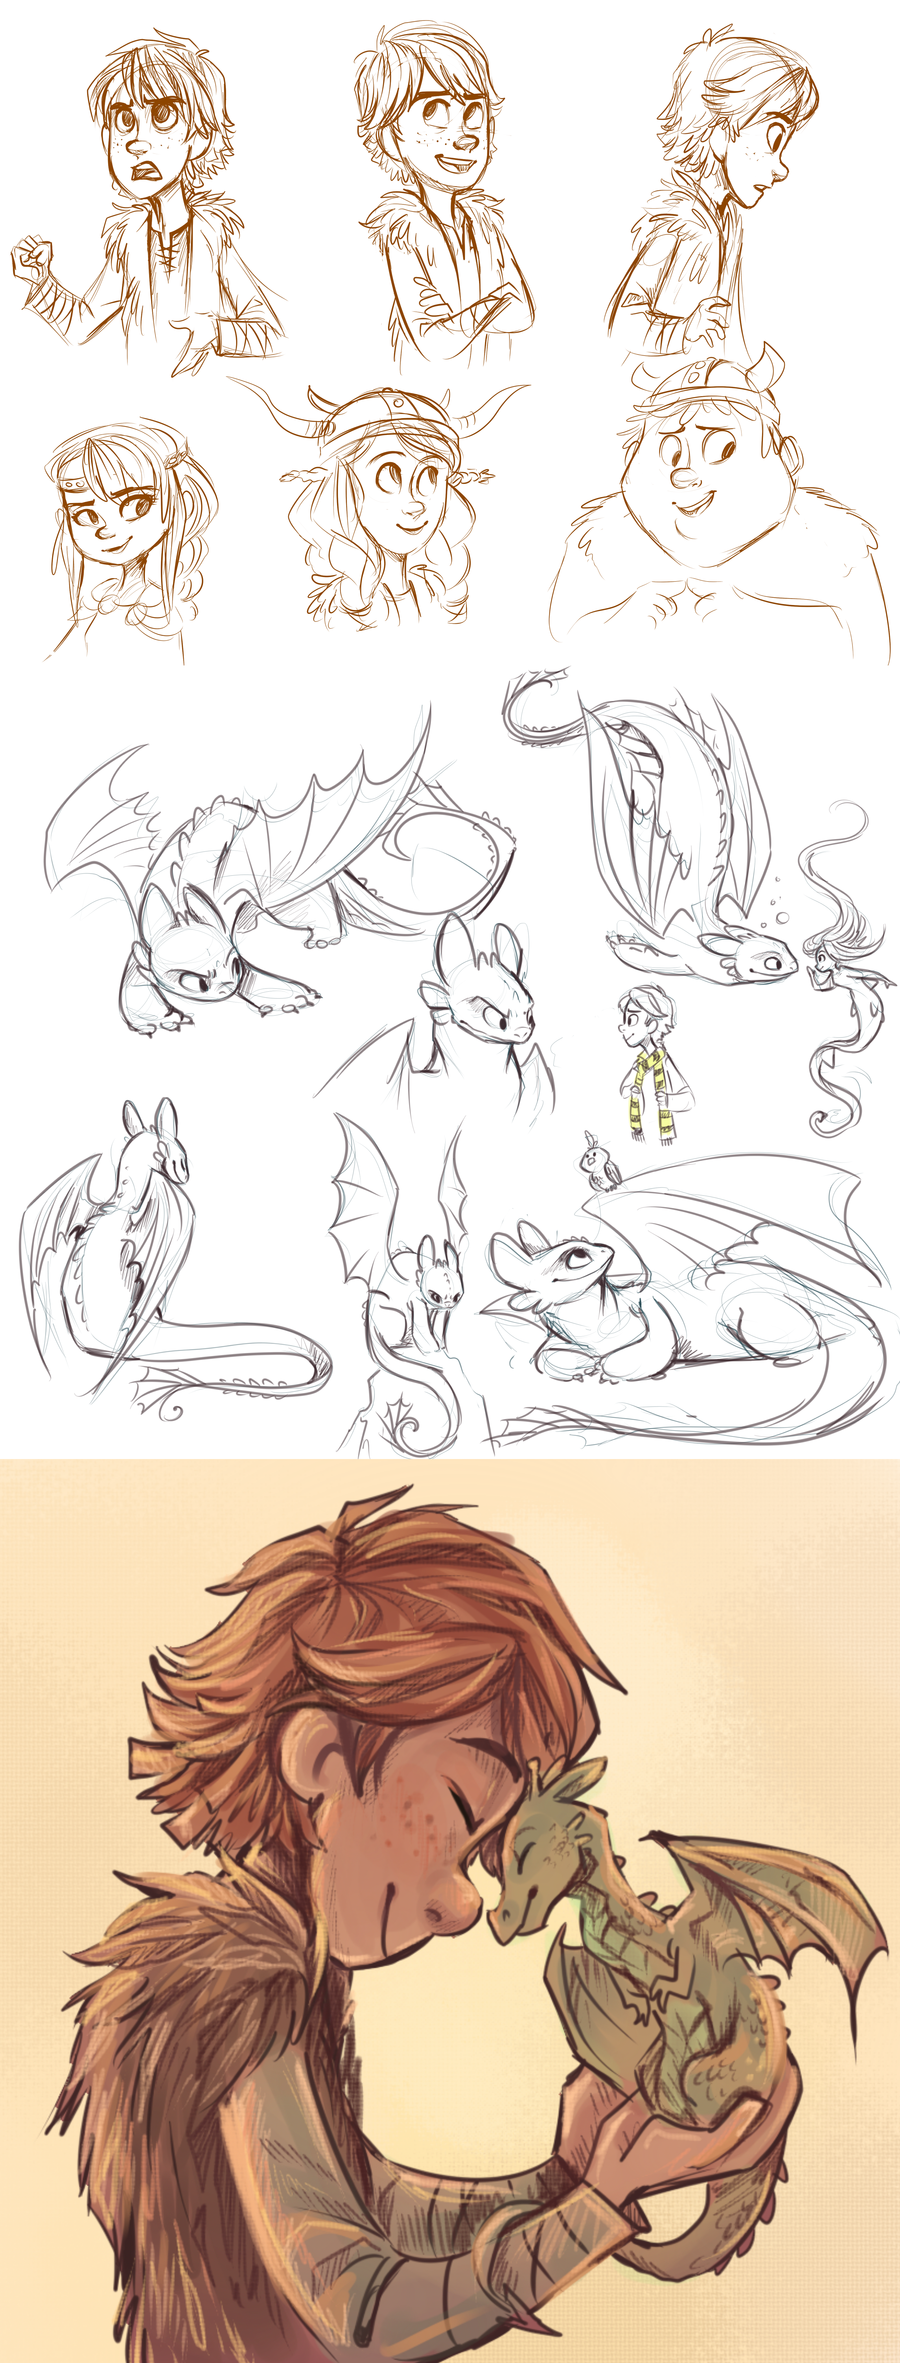 Some How To Train Your Dragon Fan Art By Sharpie91iantart